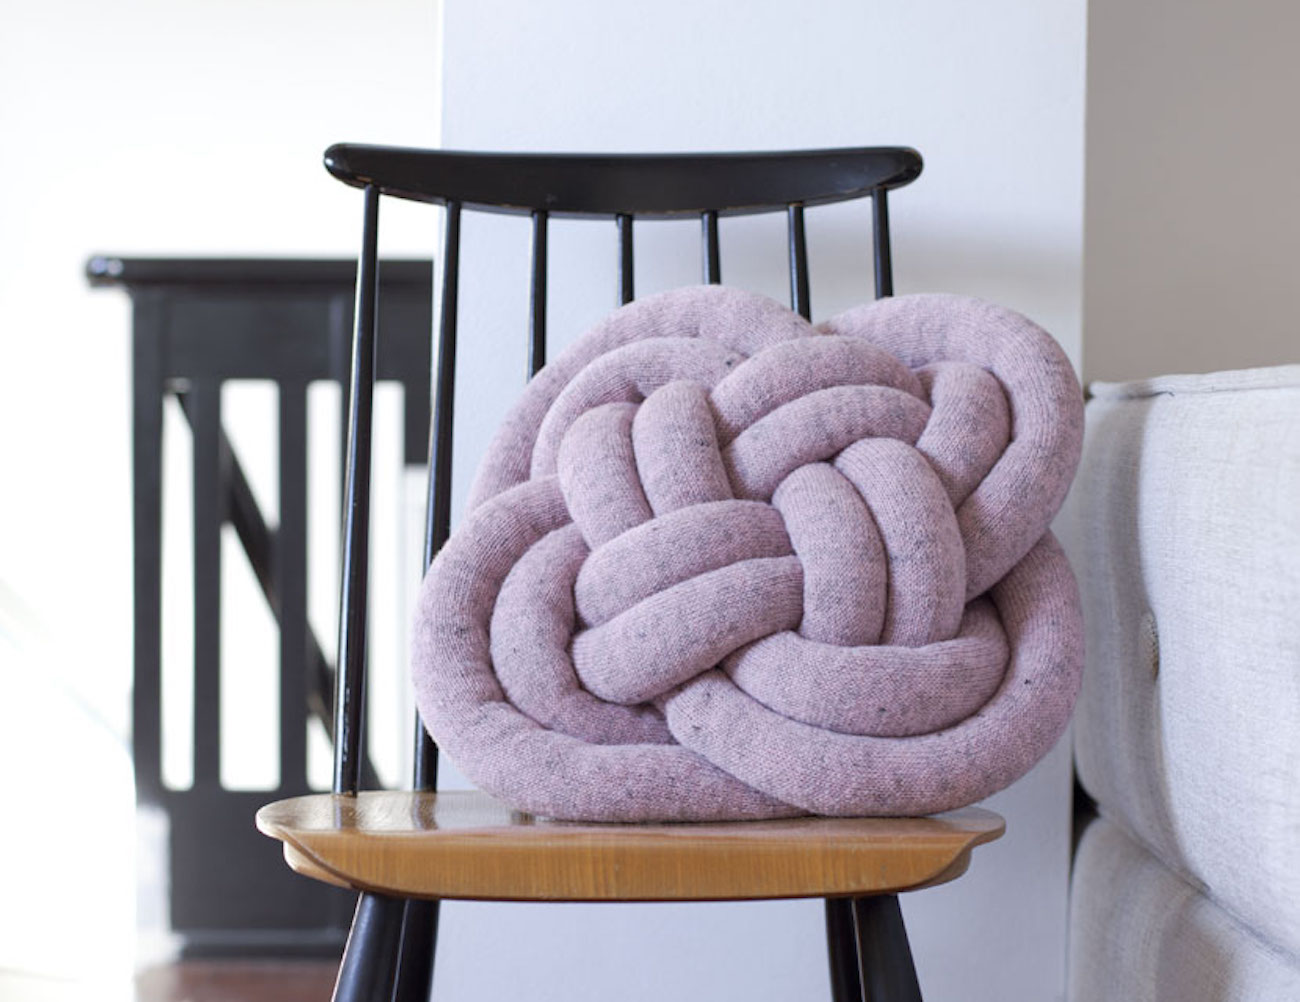 Notknot Pillow Cosy Oversized Knotted Pillow Gadget Flow